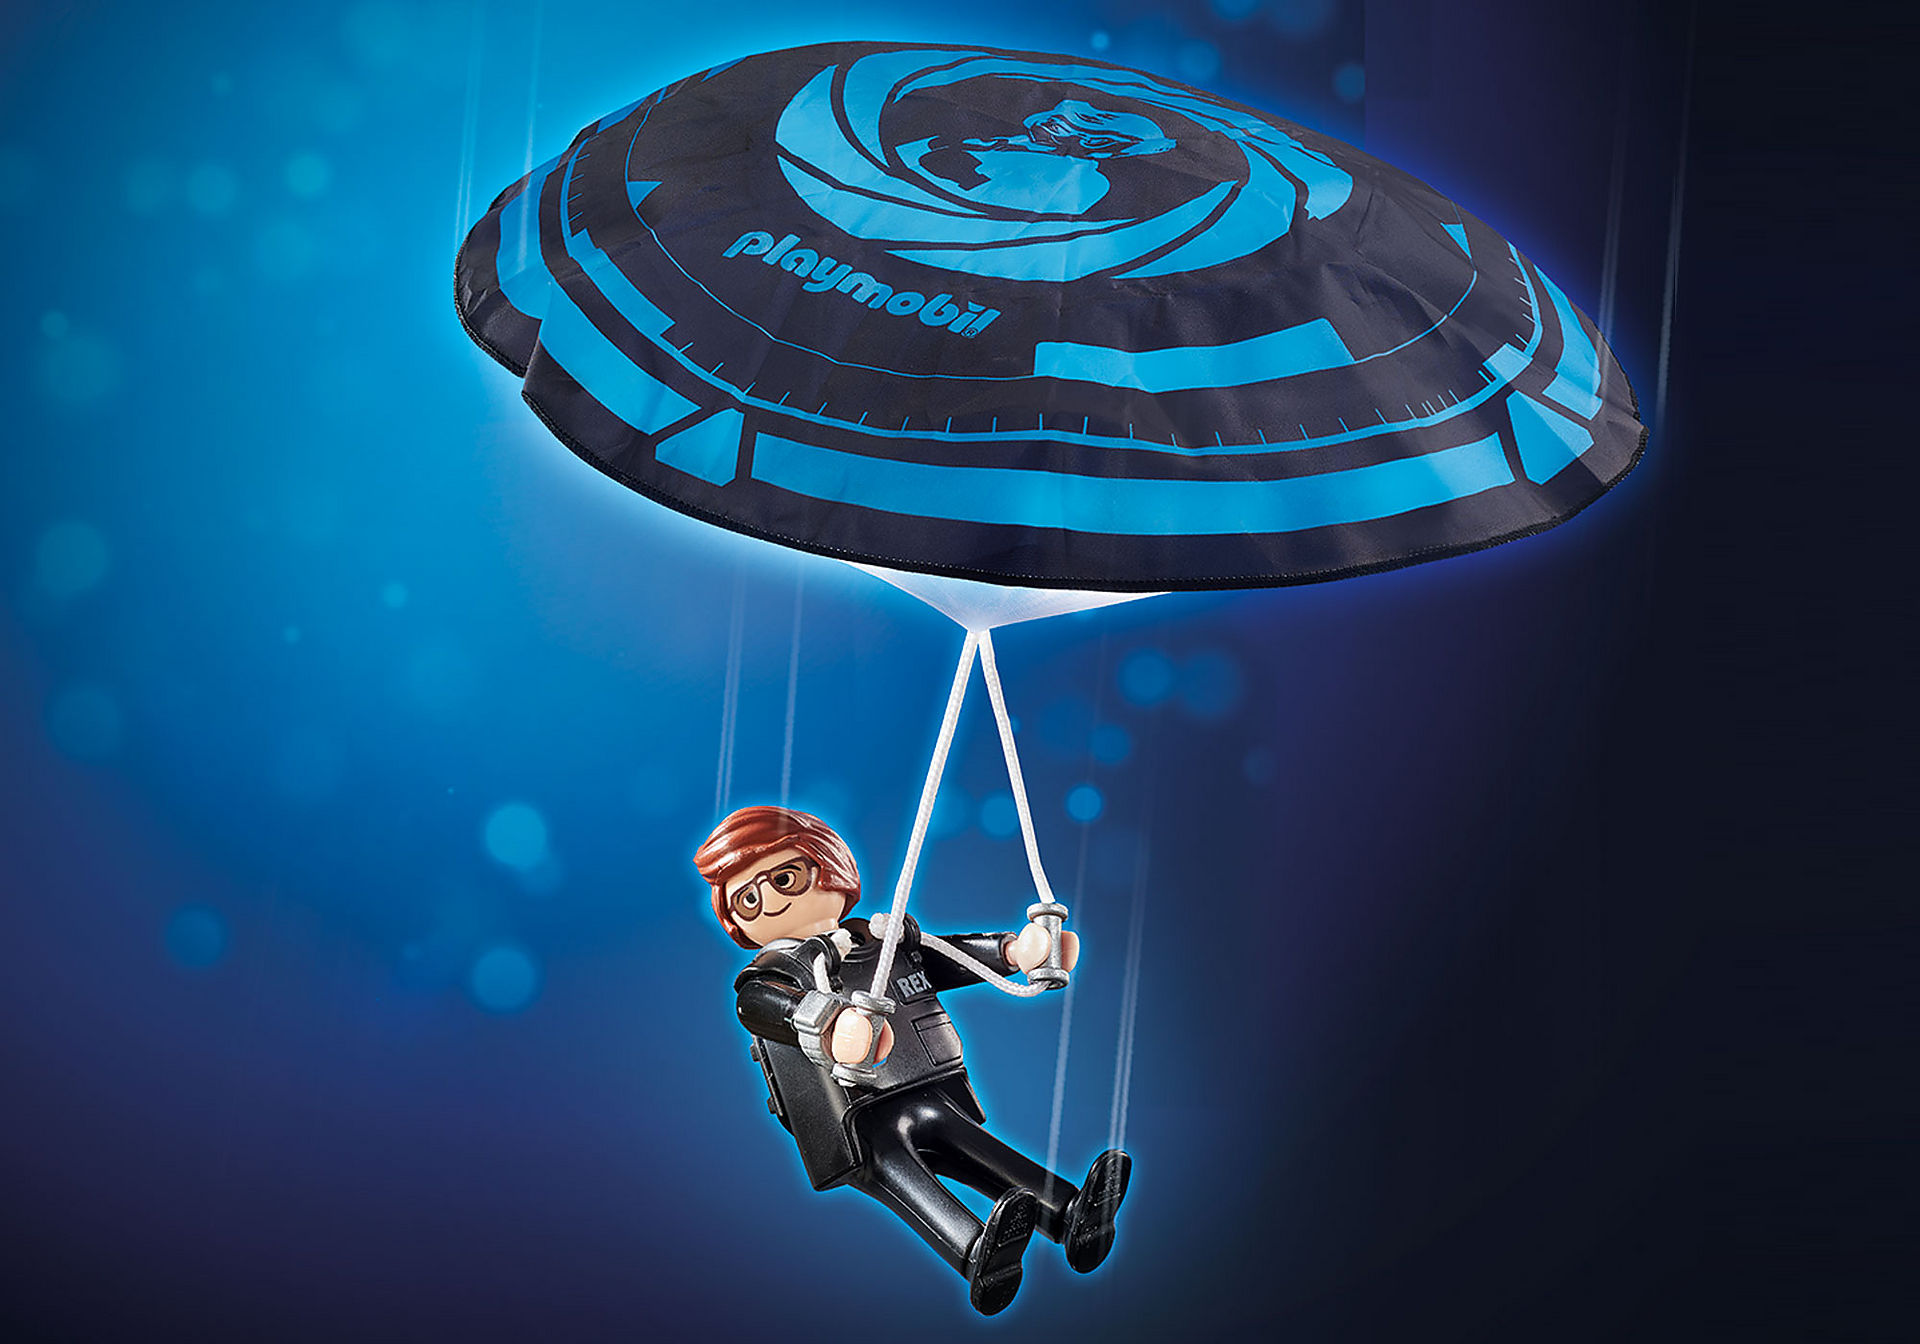 70070 PLAYMOBIL: THE MOVIE Rex Dasher avec parachute zoom image1